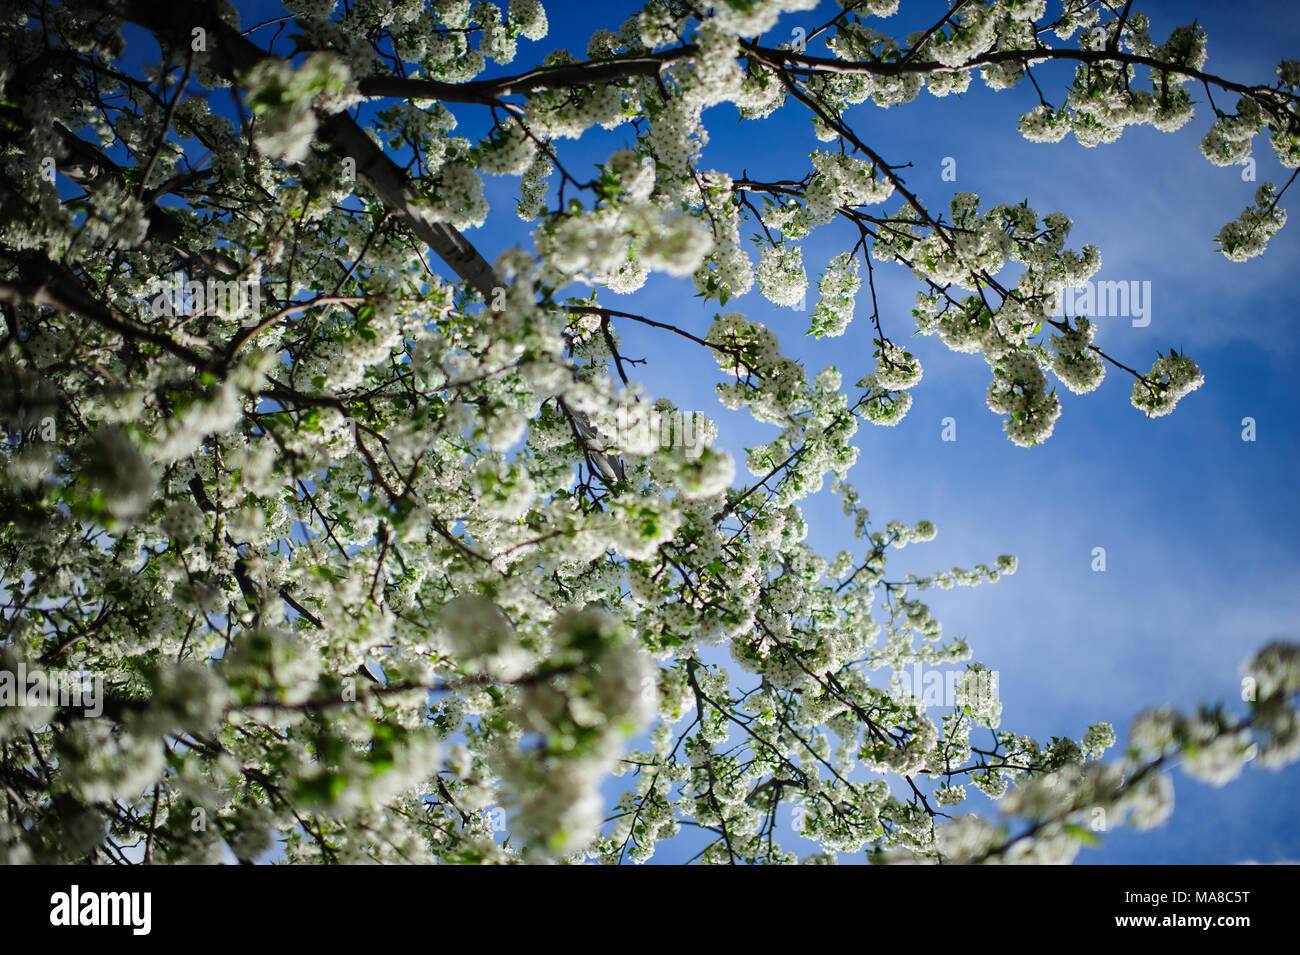 Flowering crabapple trees stock photos flowering crabapple trees white flowers on a blooming crabapple tree seen against the blue sky during spring in izmirmasajfo